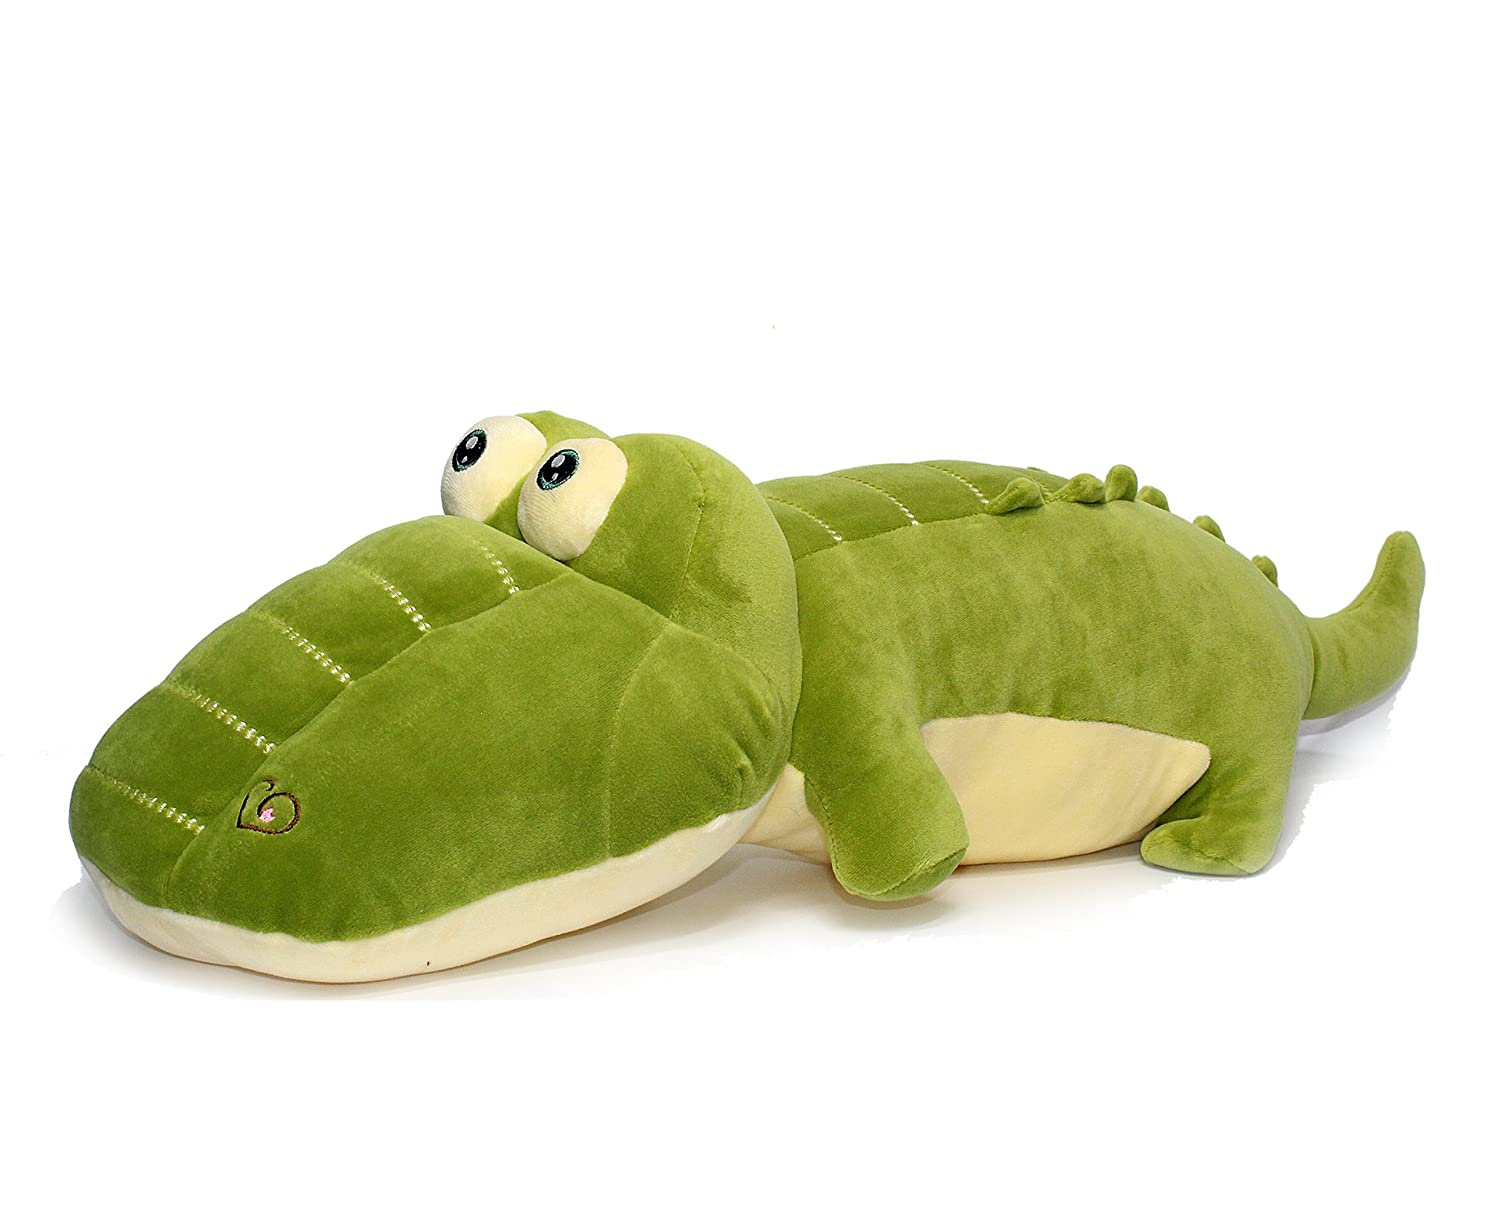 Vintoys Lovely Crocodile Big Hugging Pillow Soft Plush Toy Stuffed Animals 26.5""